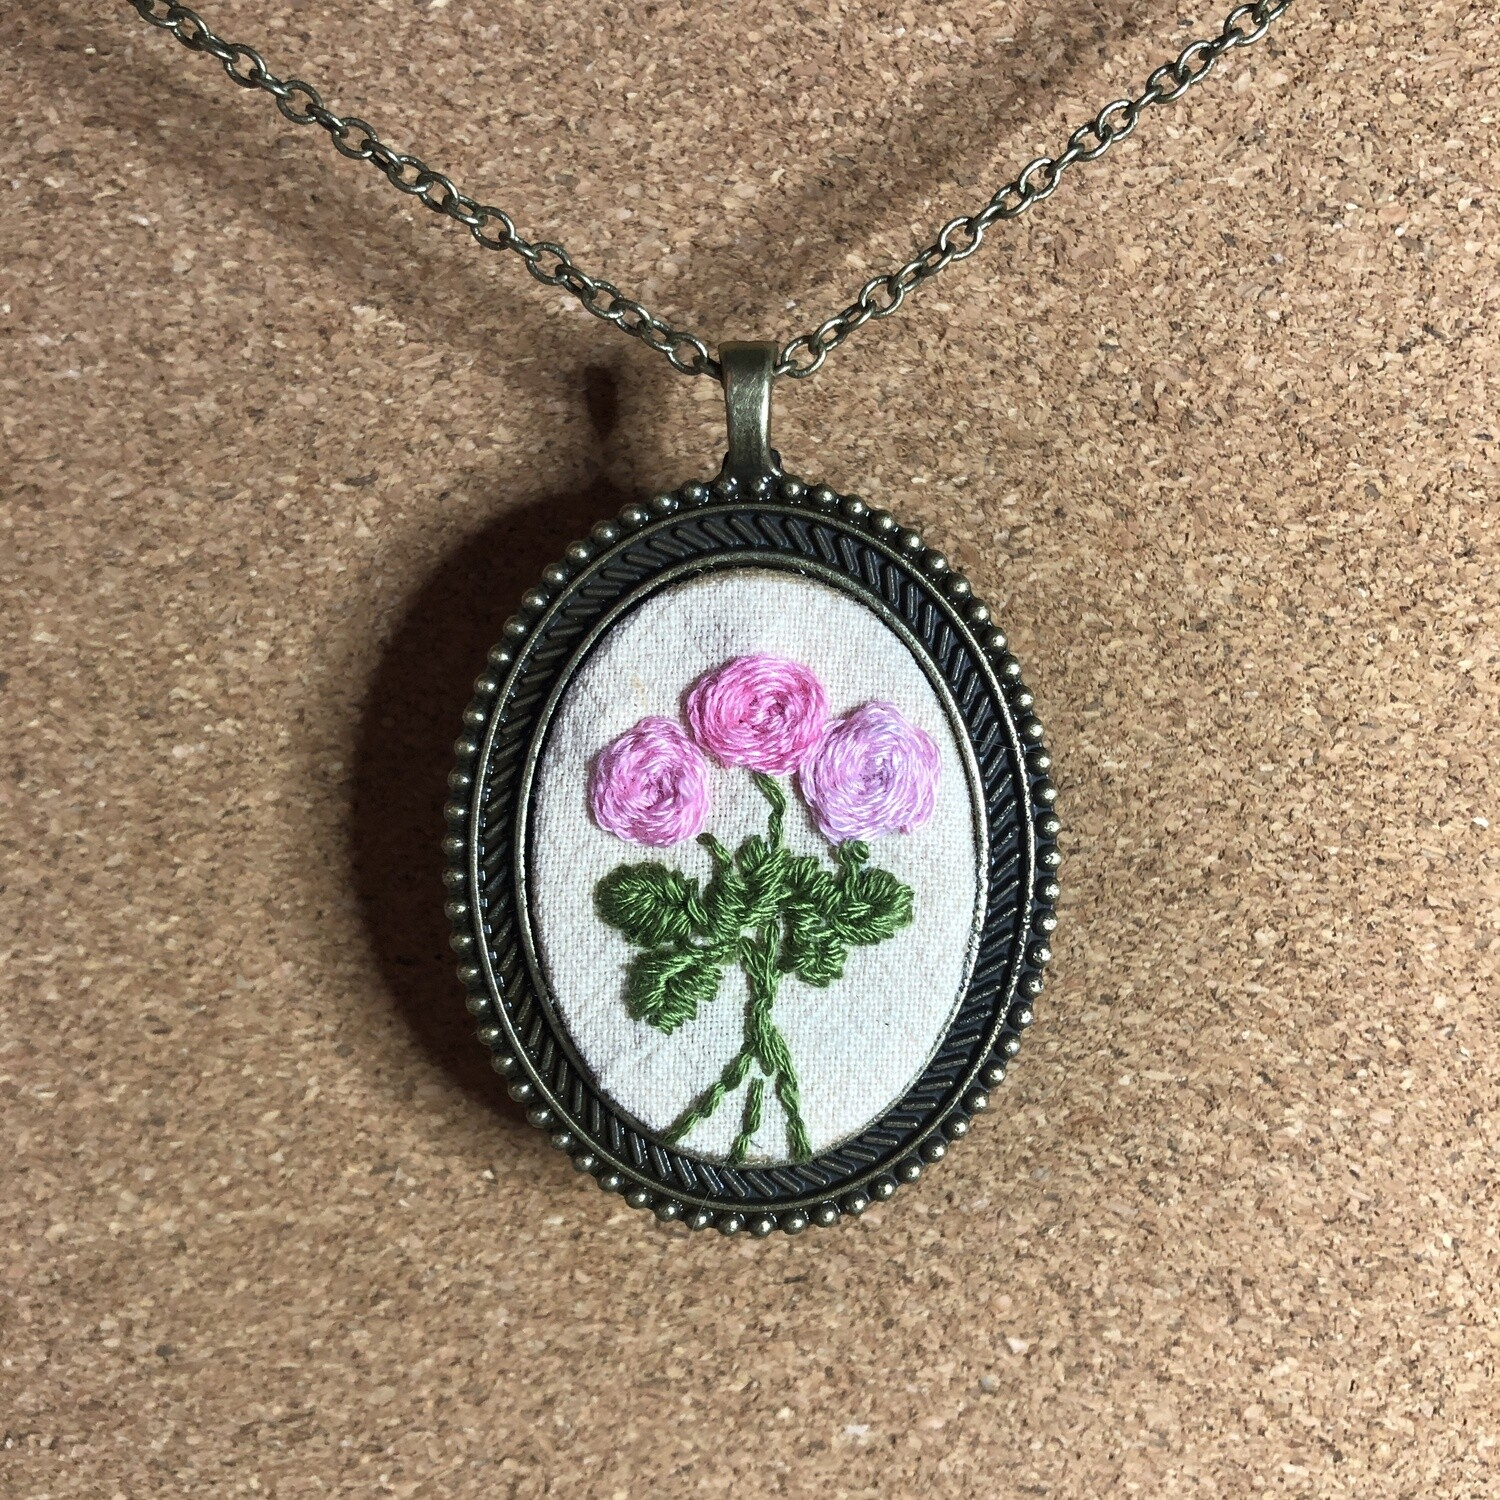 Rose Blossom Embroidered Necklace - Pink Spring Flowers Pendant